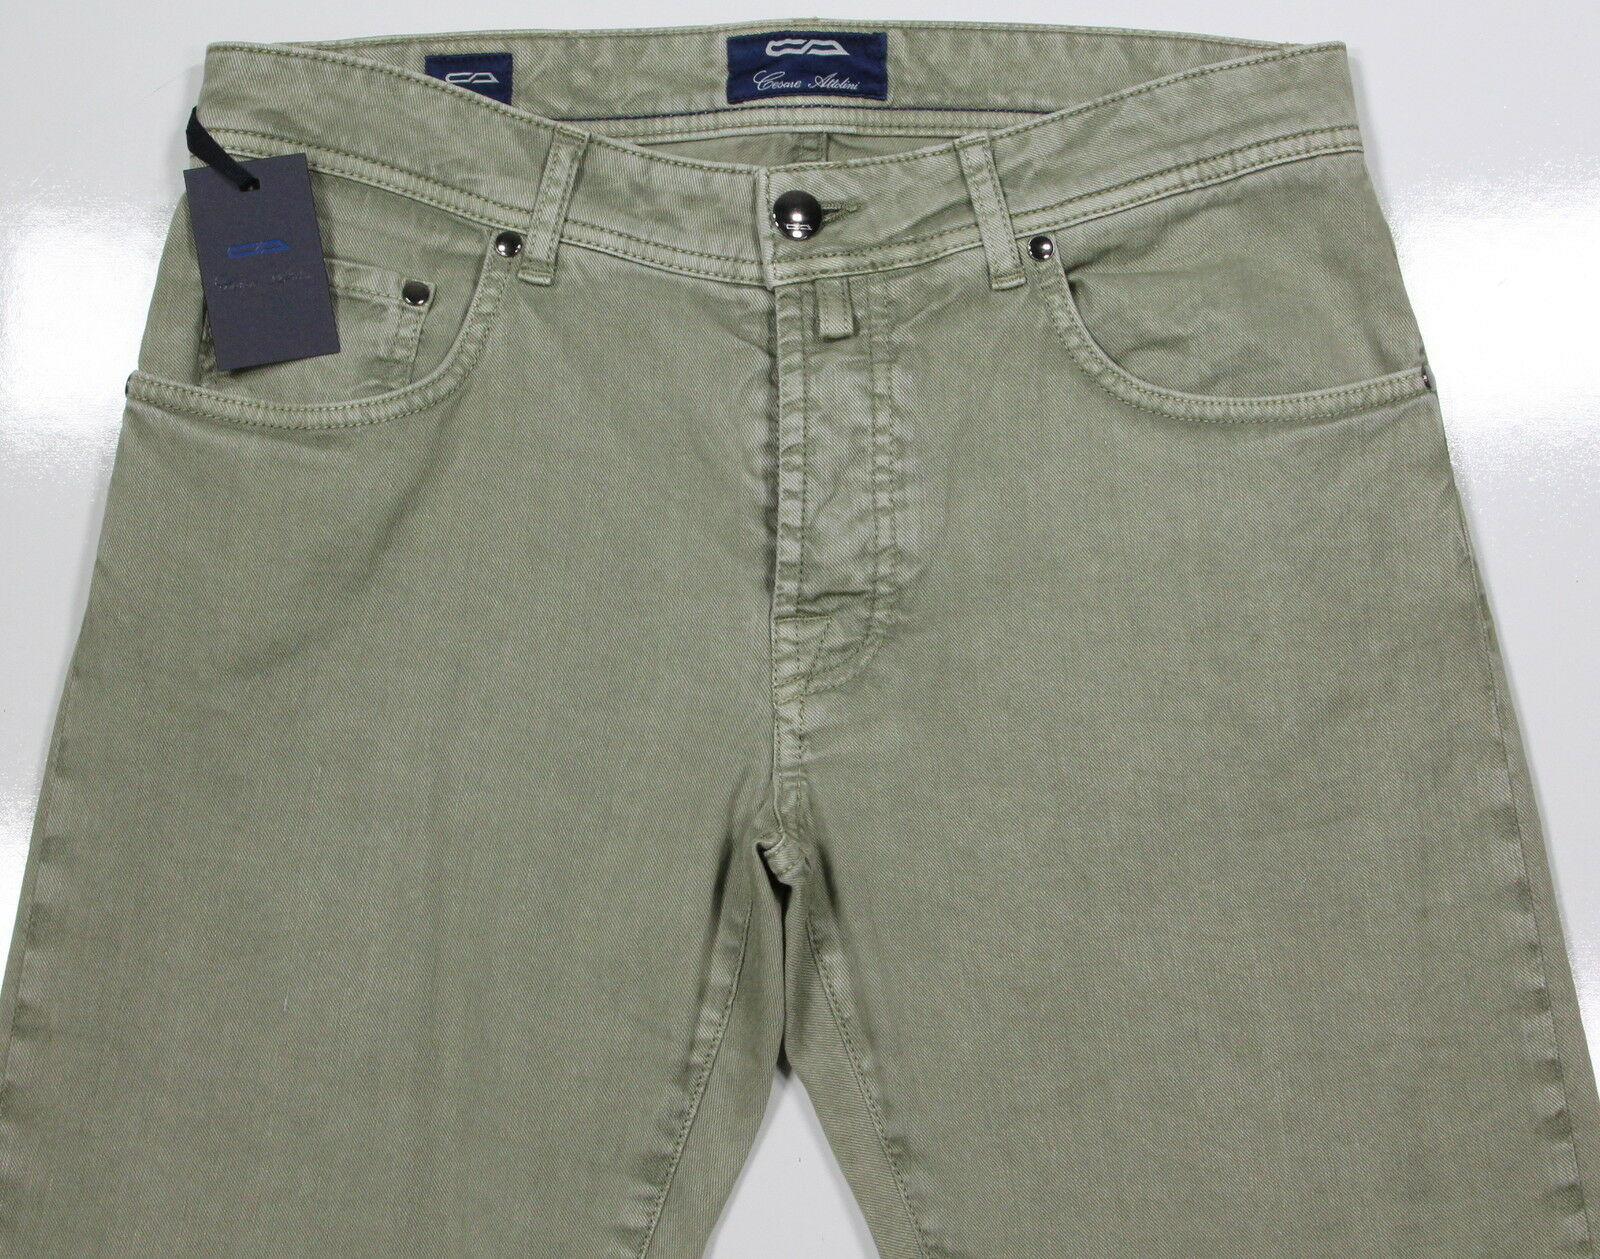 NWT New  CESARE ATTOLINI  Current Olive Green Cotton-Linen Stretch Jeans 32x32